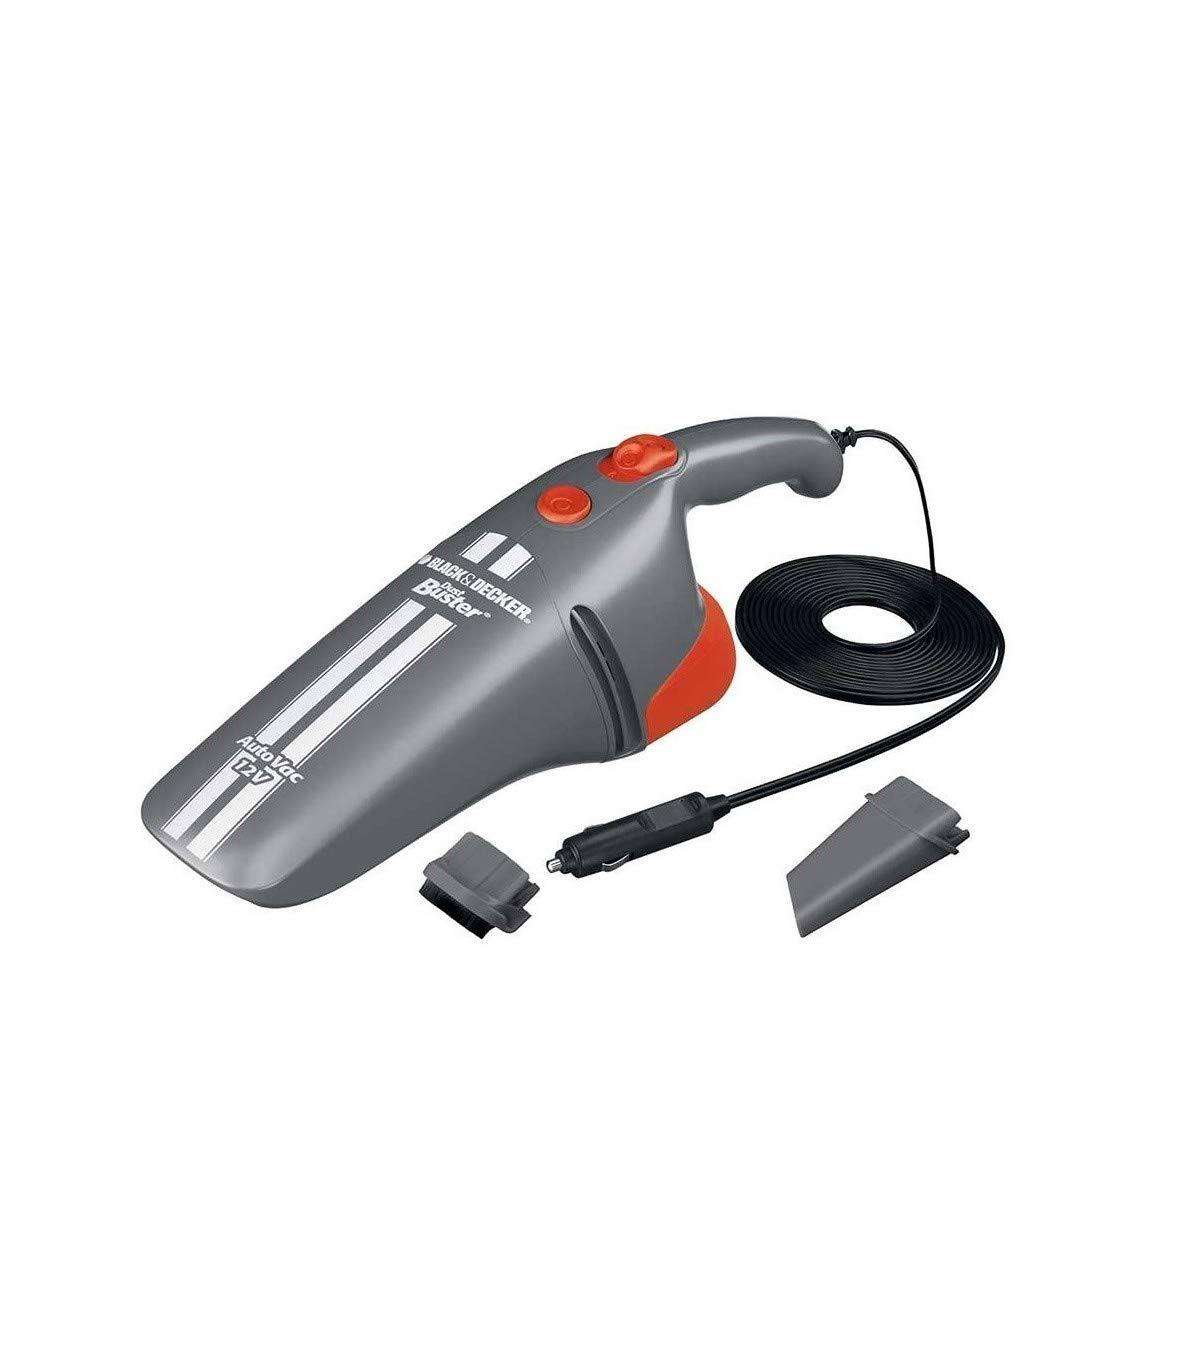 Black & DeckerTrade Aspirador para Coche aspiradora 12 V Black & Decker AV 1205: Amazon.es: Hogar